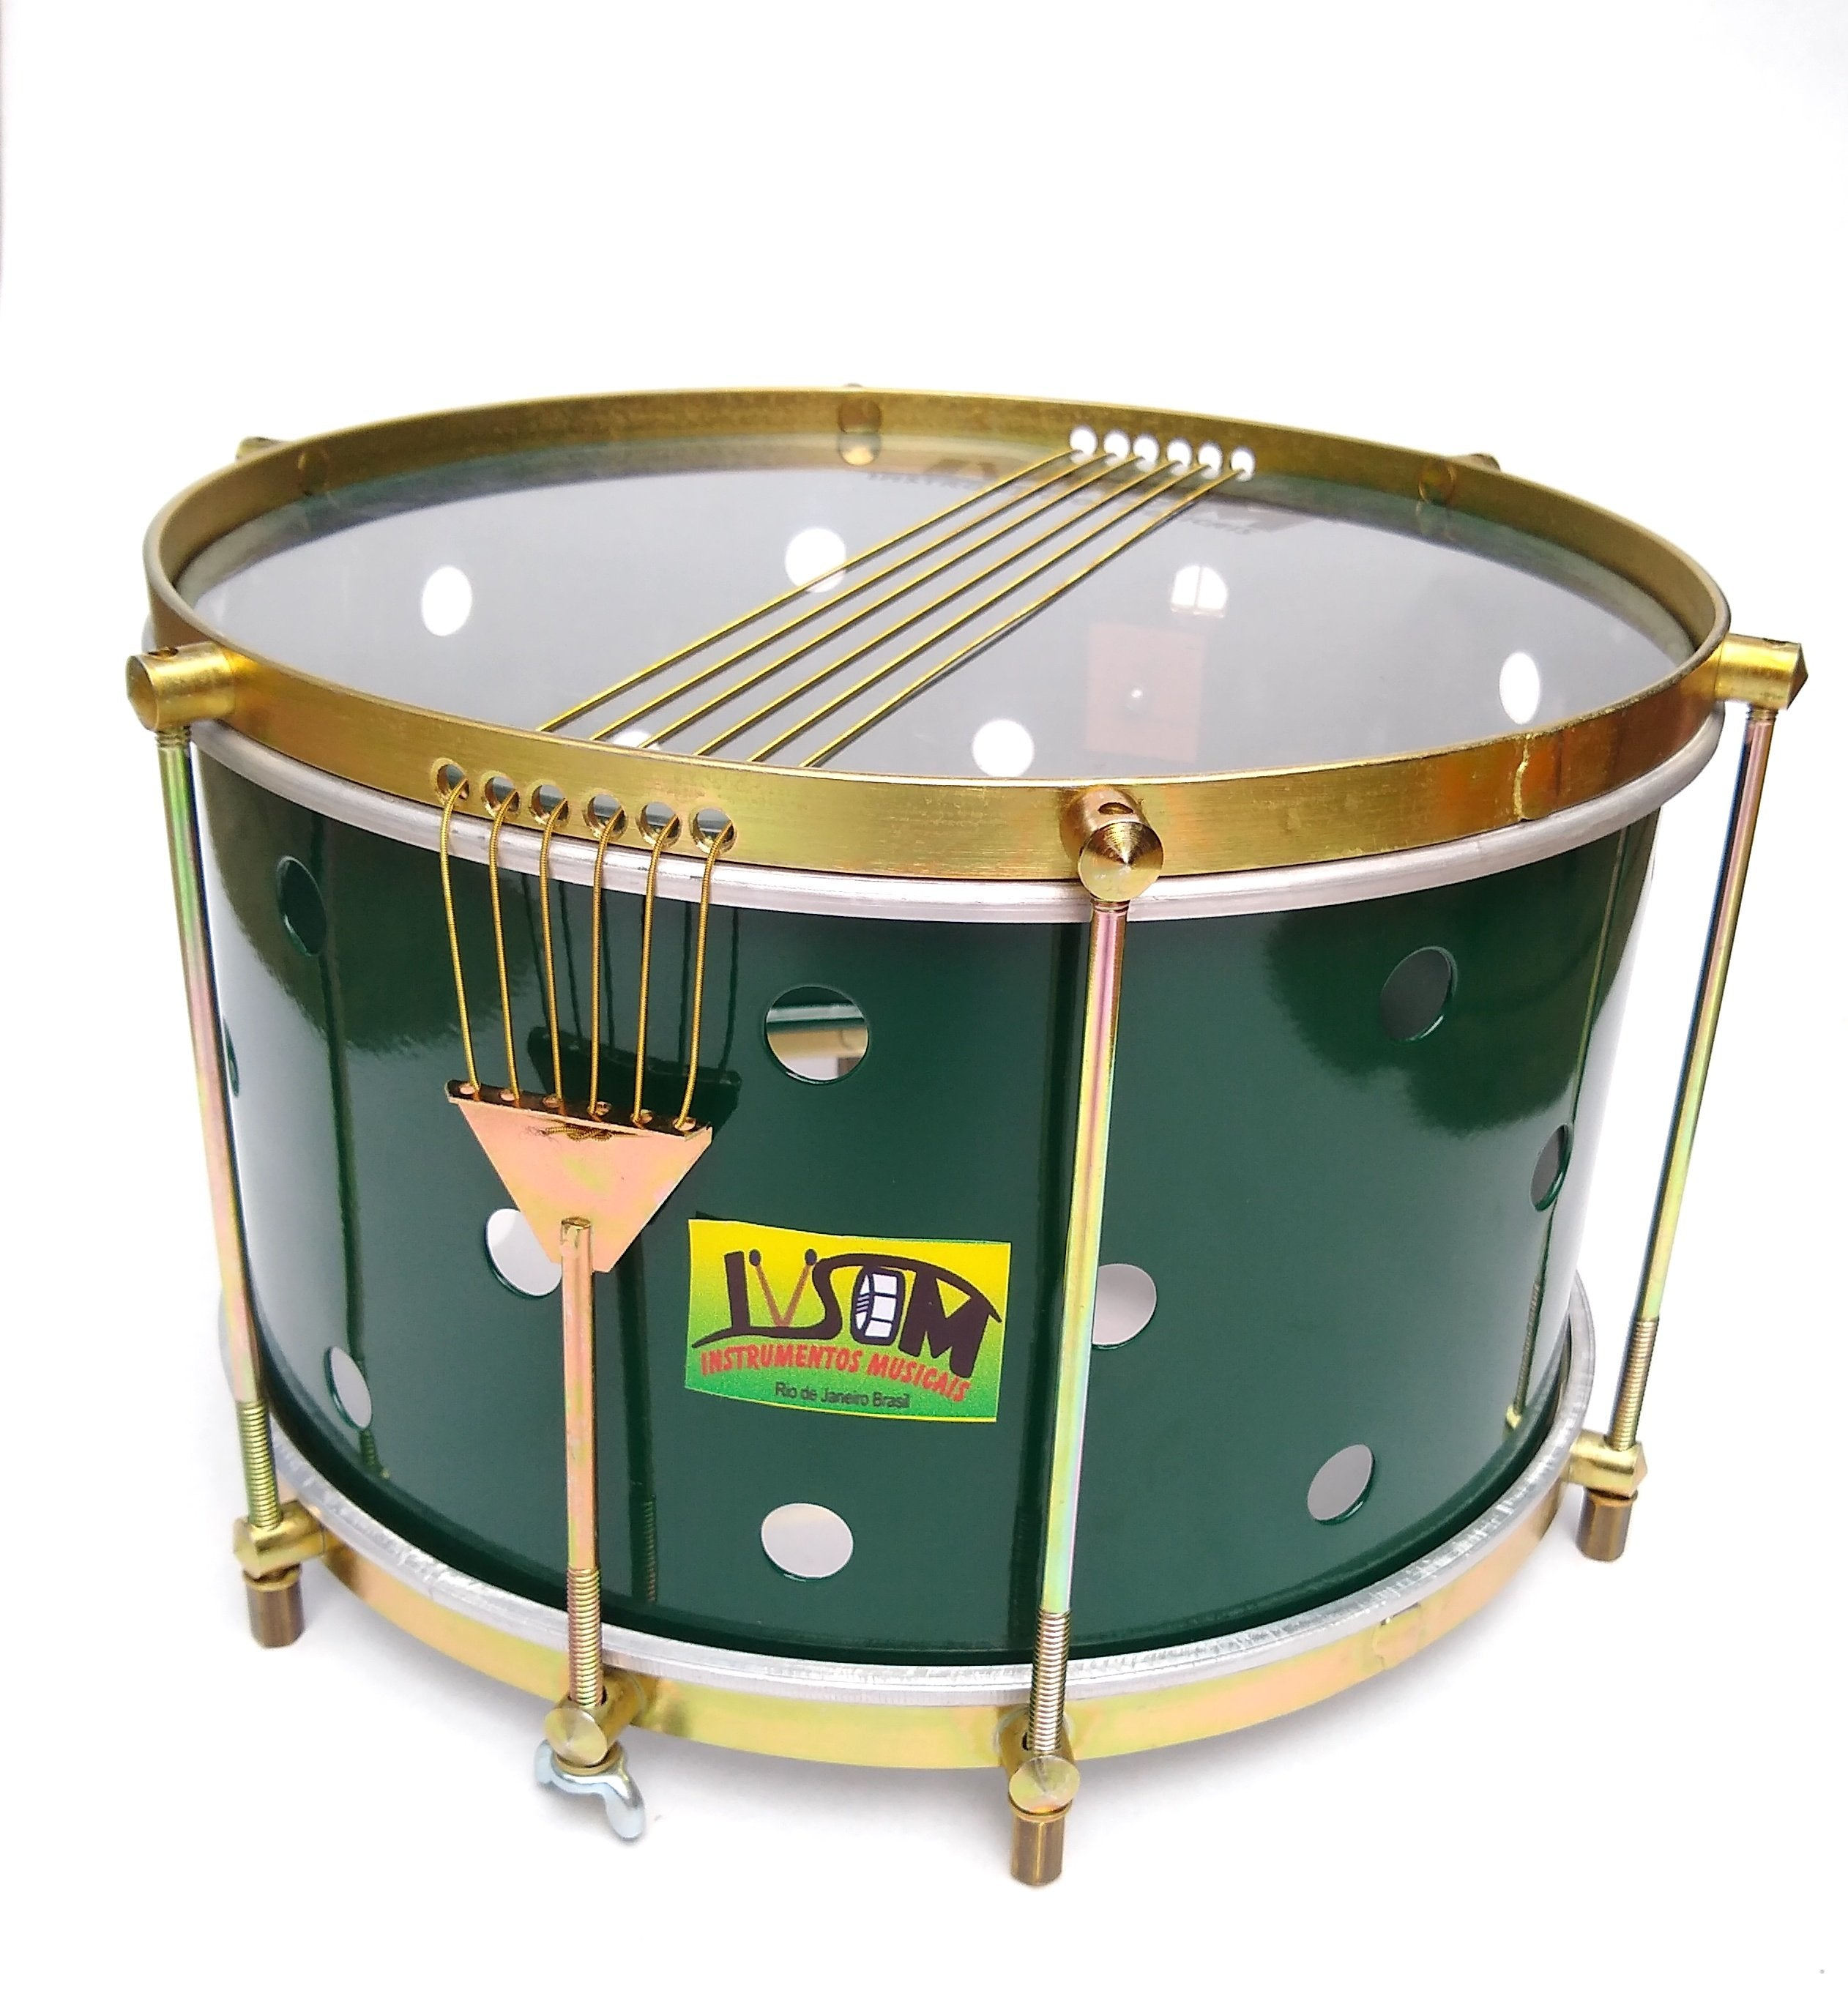 Batucada caixa with brass colored hardware, six strings, IVSOM, clear dum heads and a green shell. The green shell has small holes drilled into it.